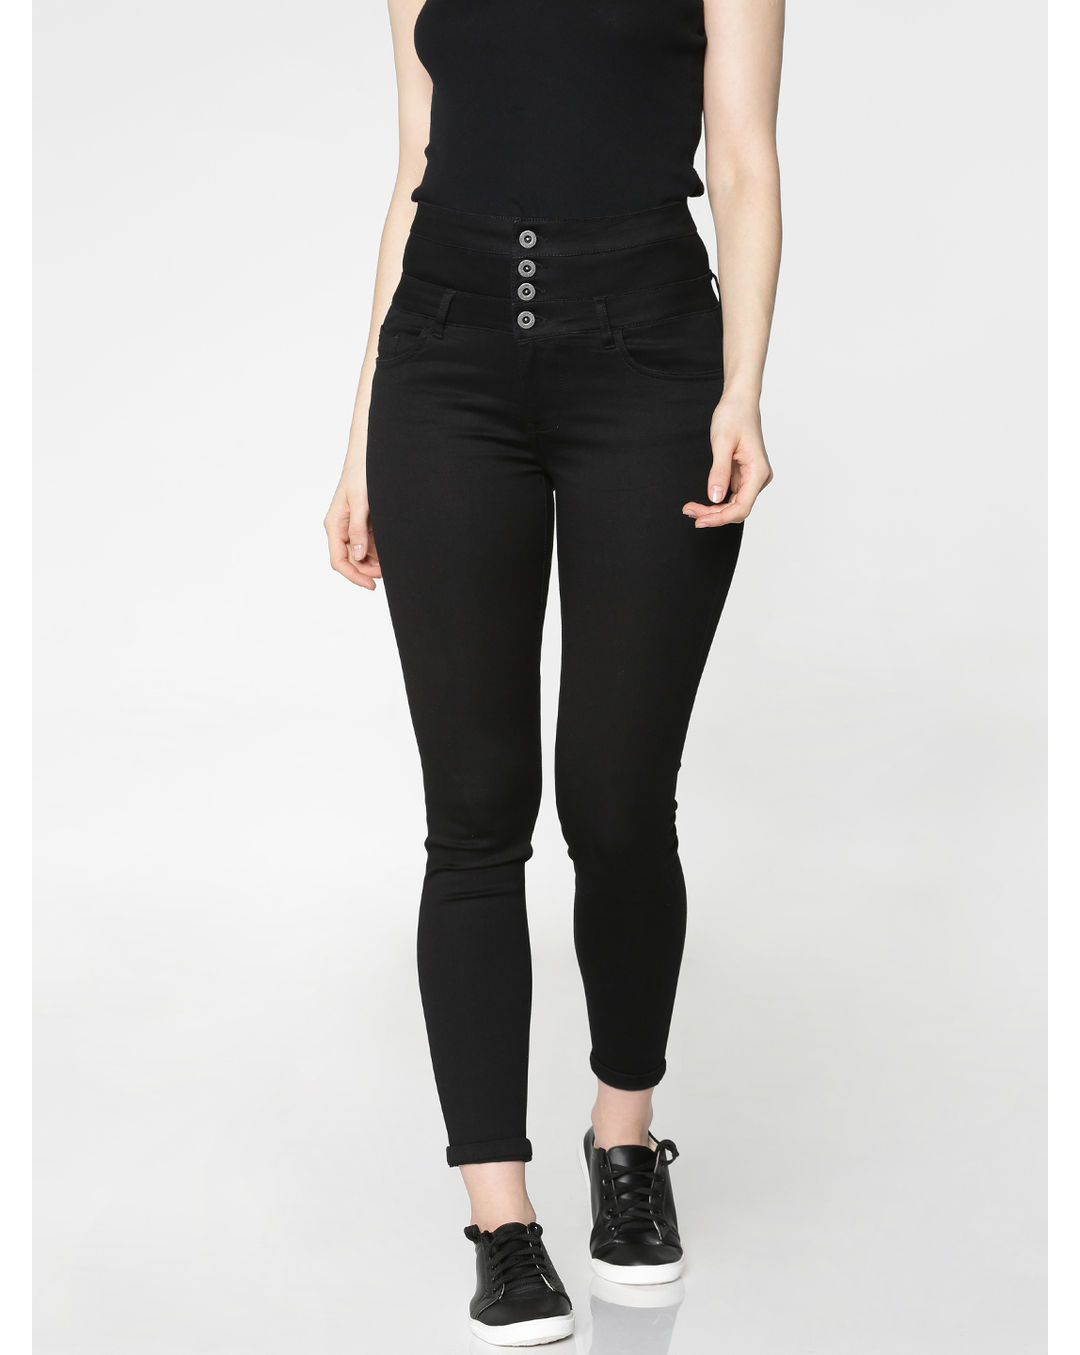 3cdadb255f9f70 Buy ONLY Black High Waist Ankle Length Skinny Fit Jeggings Online | ONLY